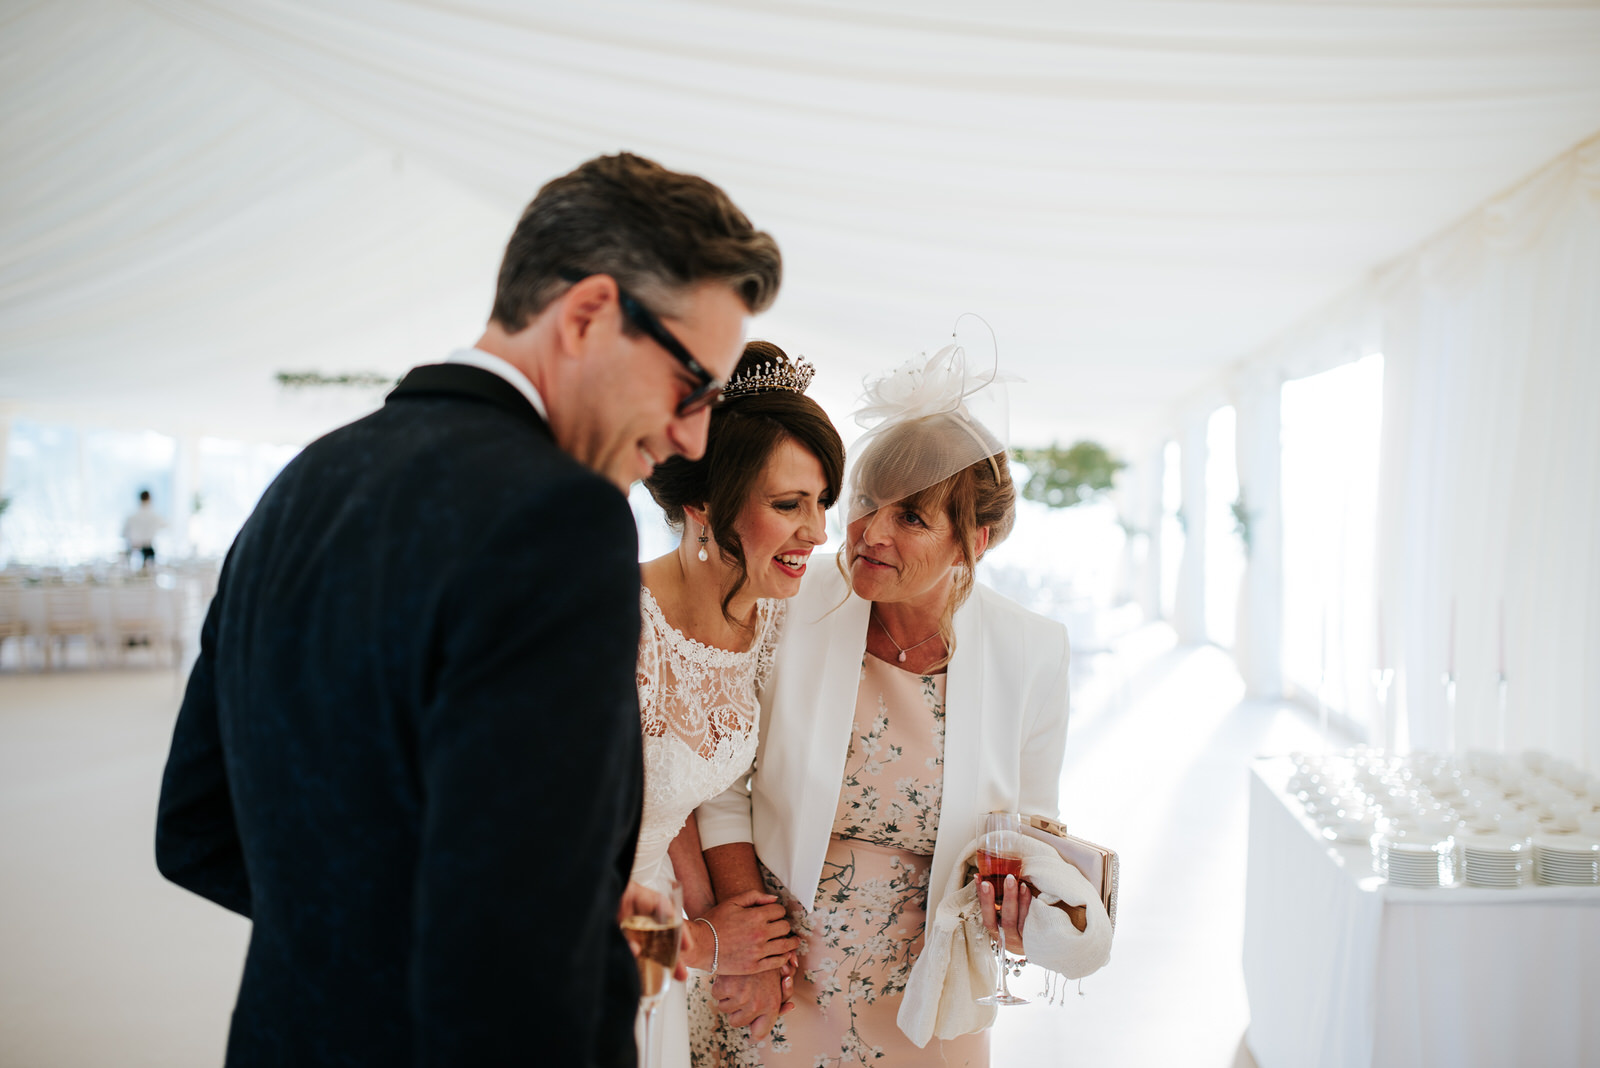 Bride and Groom smile at Mother of the Groom as she hands them a